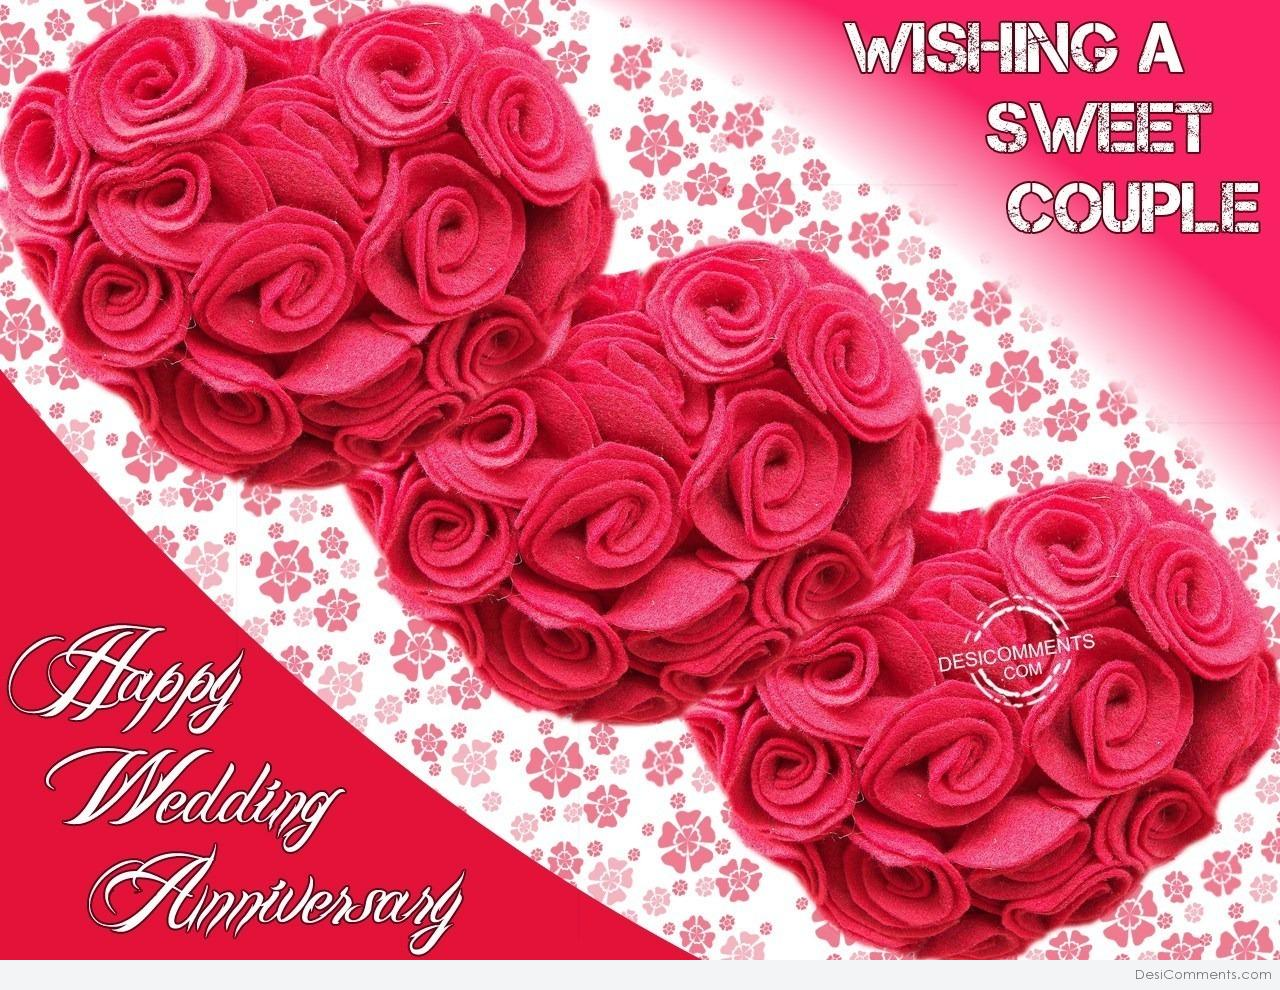 Wishing A Sweet Couple Happy Wedding Anniversary